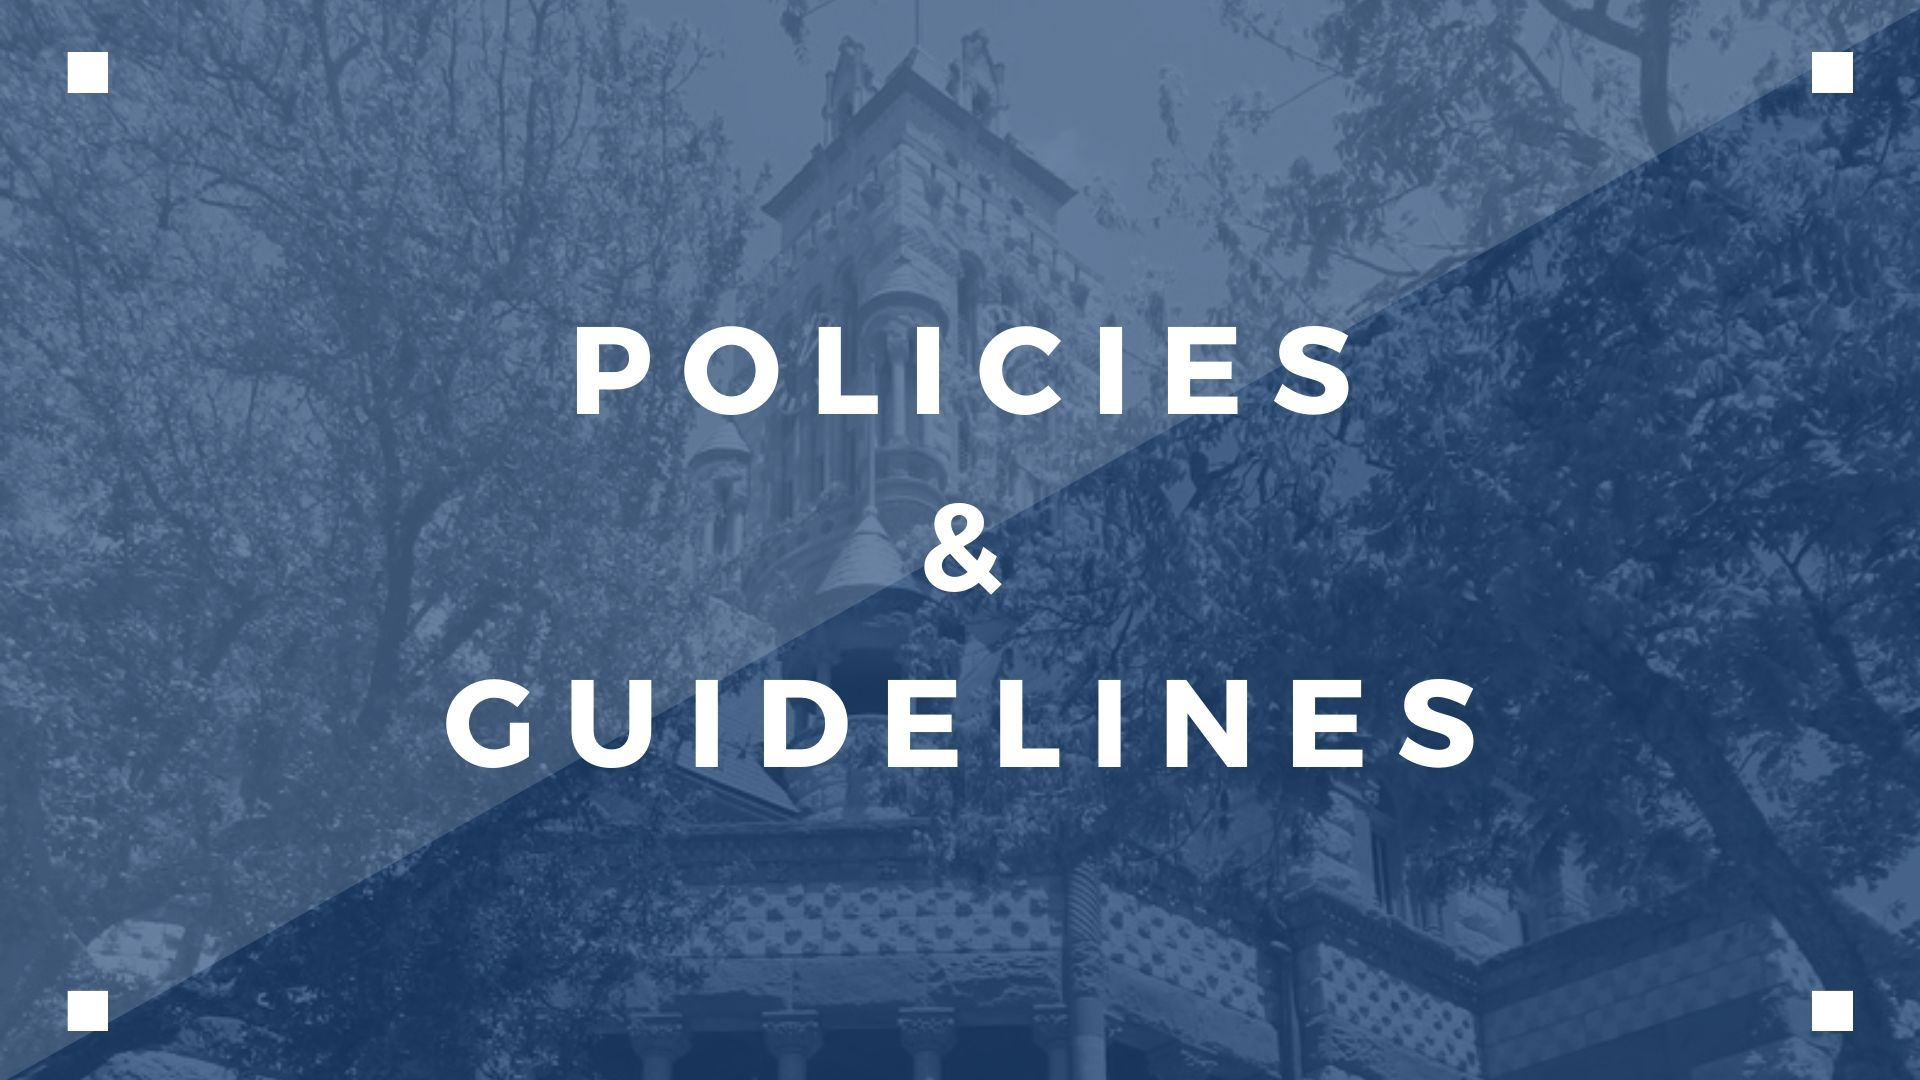 Policies-Guidelines